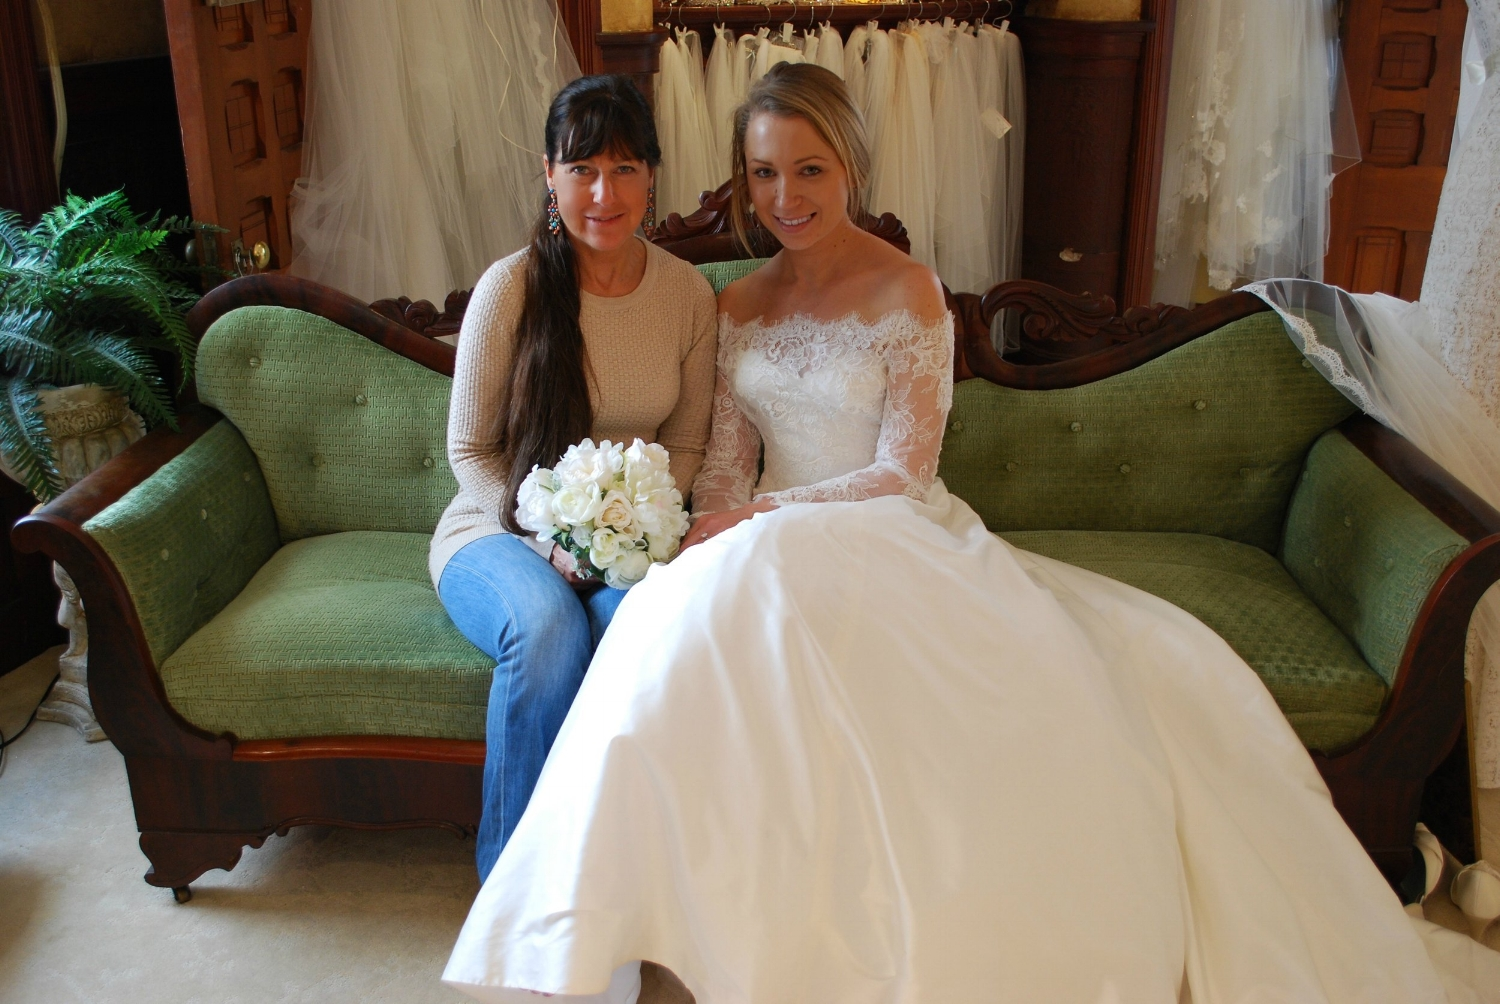 Denise, the owner of Something Bleu Bridal, offered us an amazing personalized experience. She opened her salon after hours for an additional visit to make sure this Virginia bride was absolutely certain about her choice.